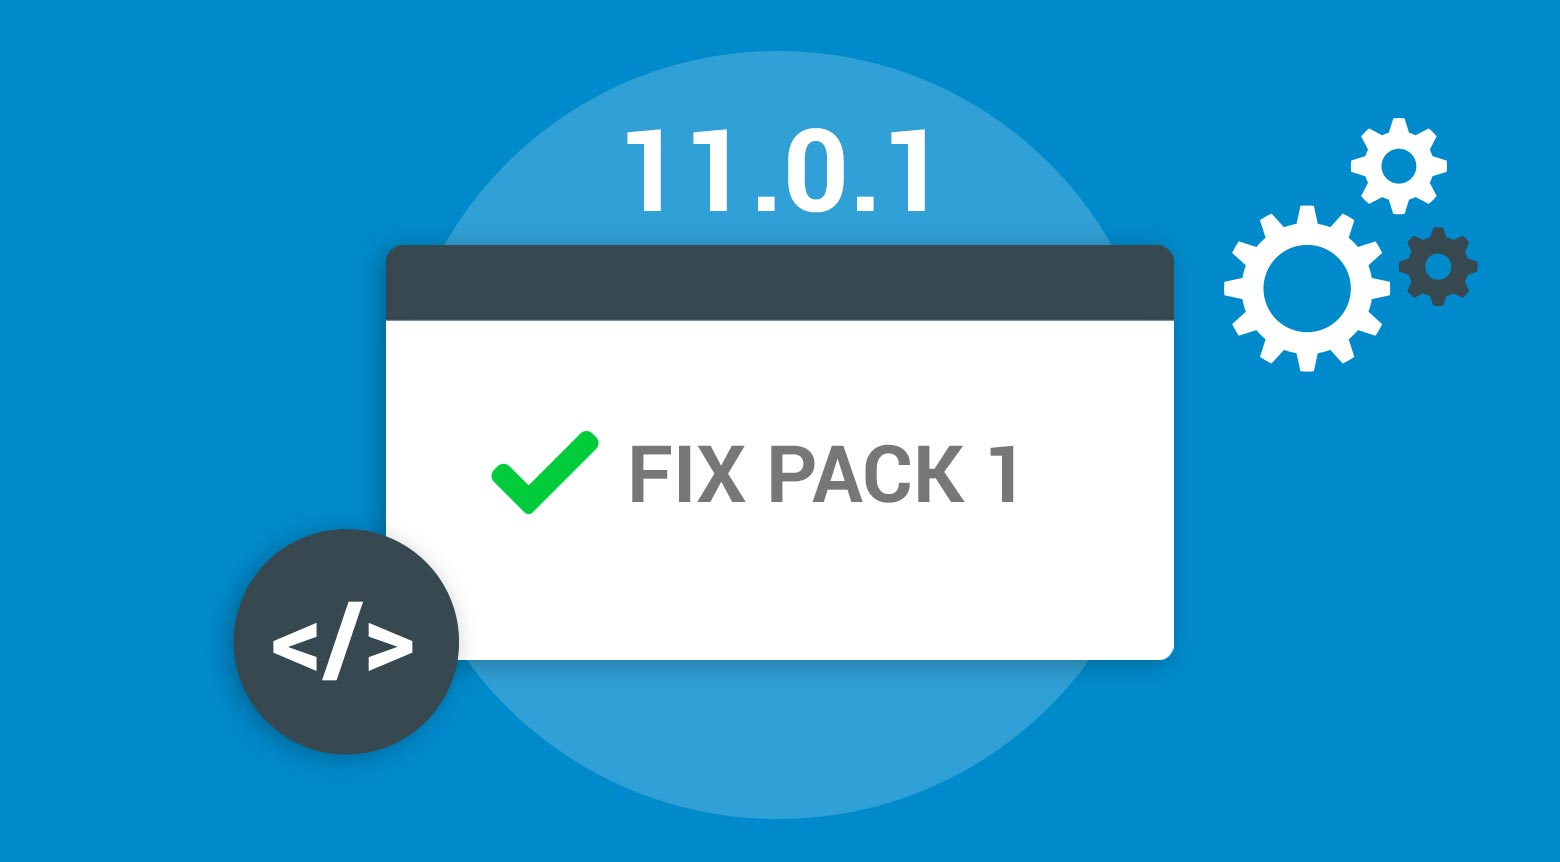 Fix Pack 1 for HCL Notes/Domino 11.0.1 is available